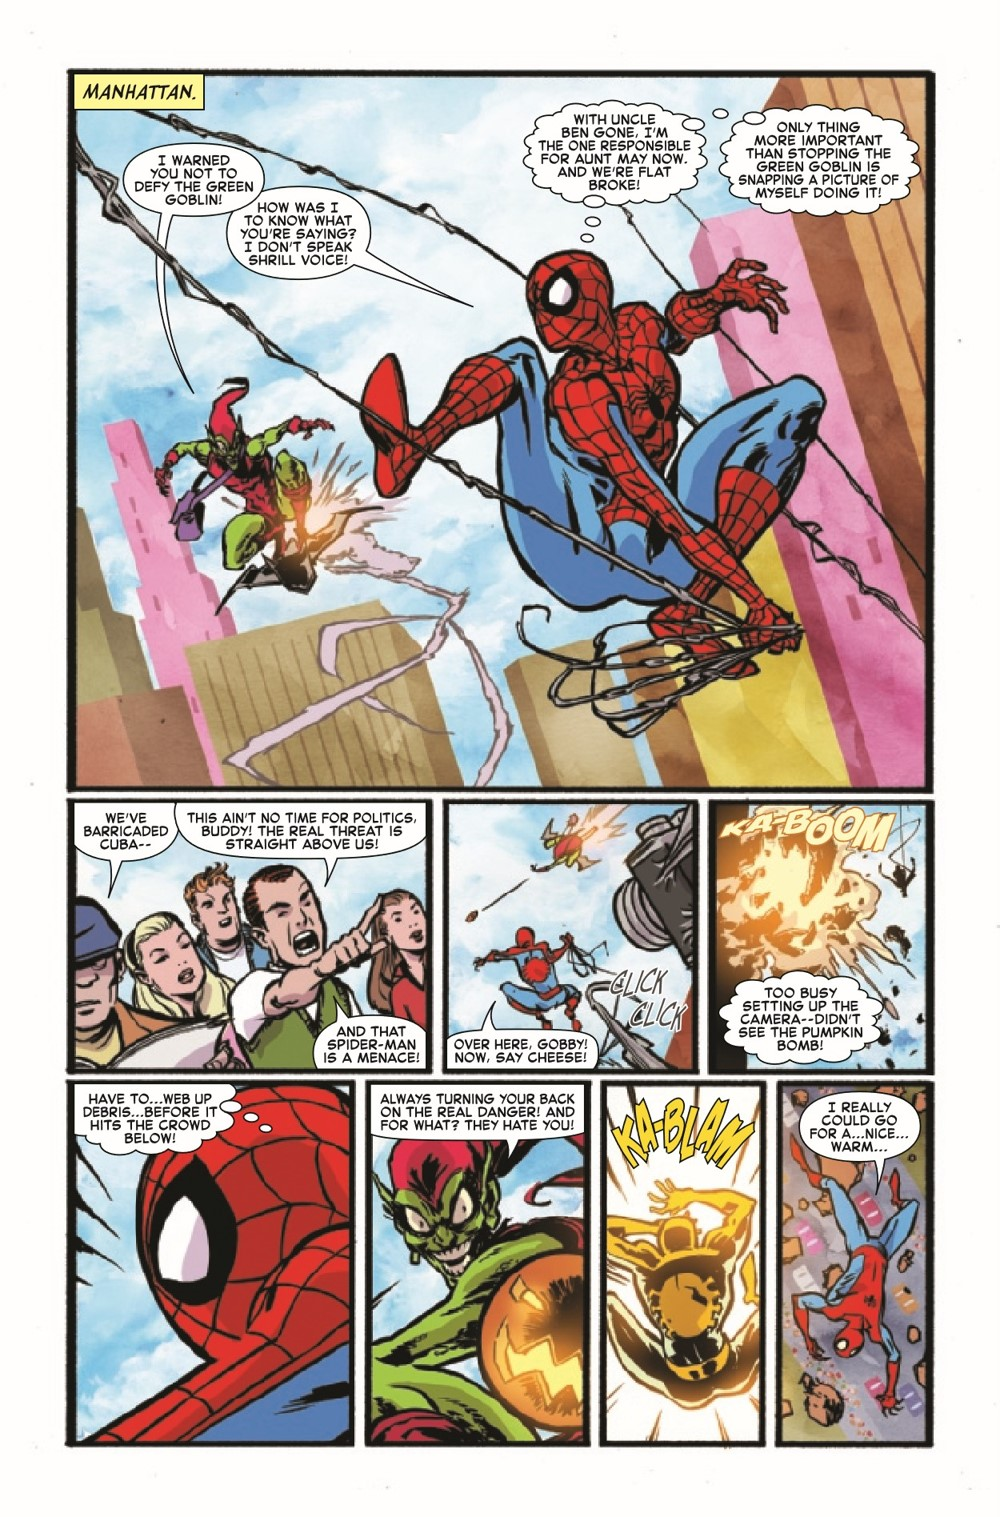 AMFAN2021001_Preview-5 ComicList Previews: AMAZING FANTASY #1 (OF 5)